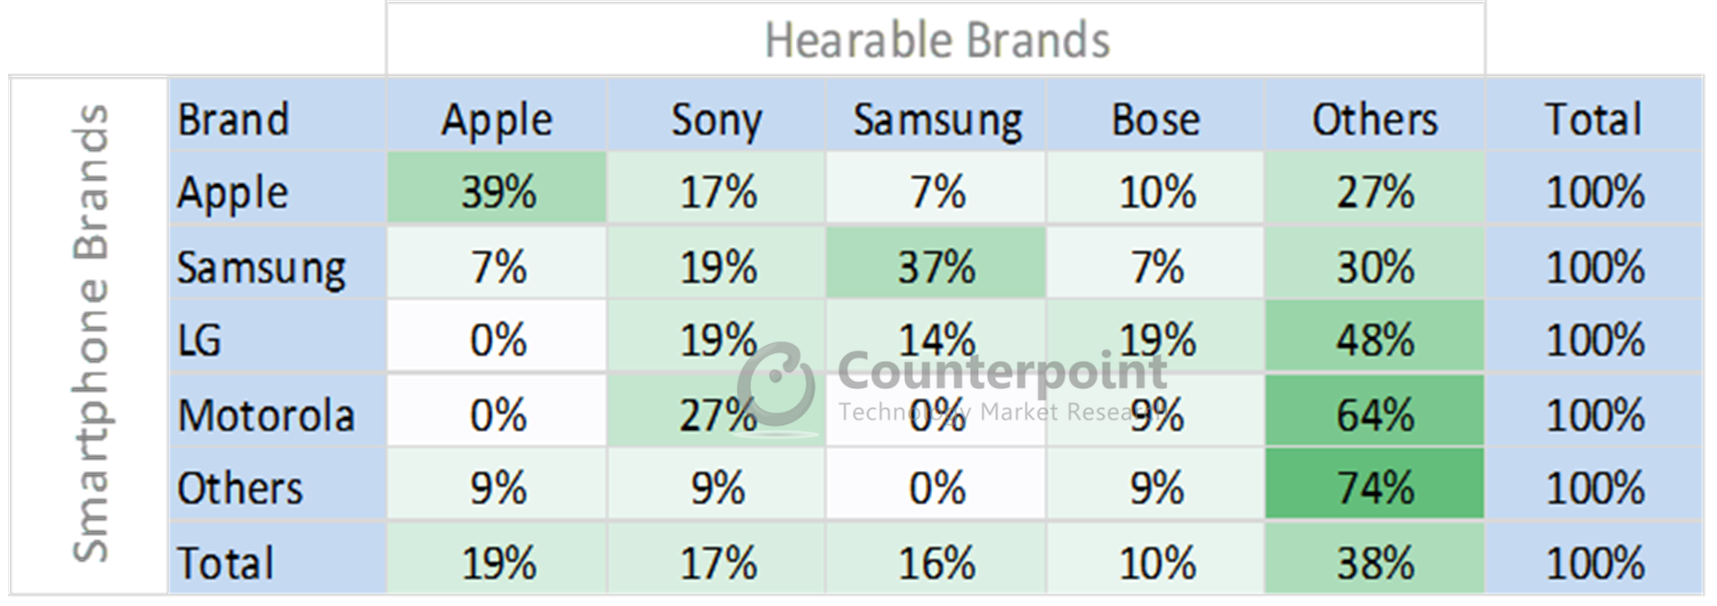 Hearables - Correlation between Smartphone and Hearable Brands